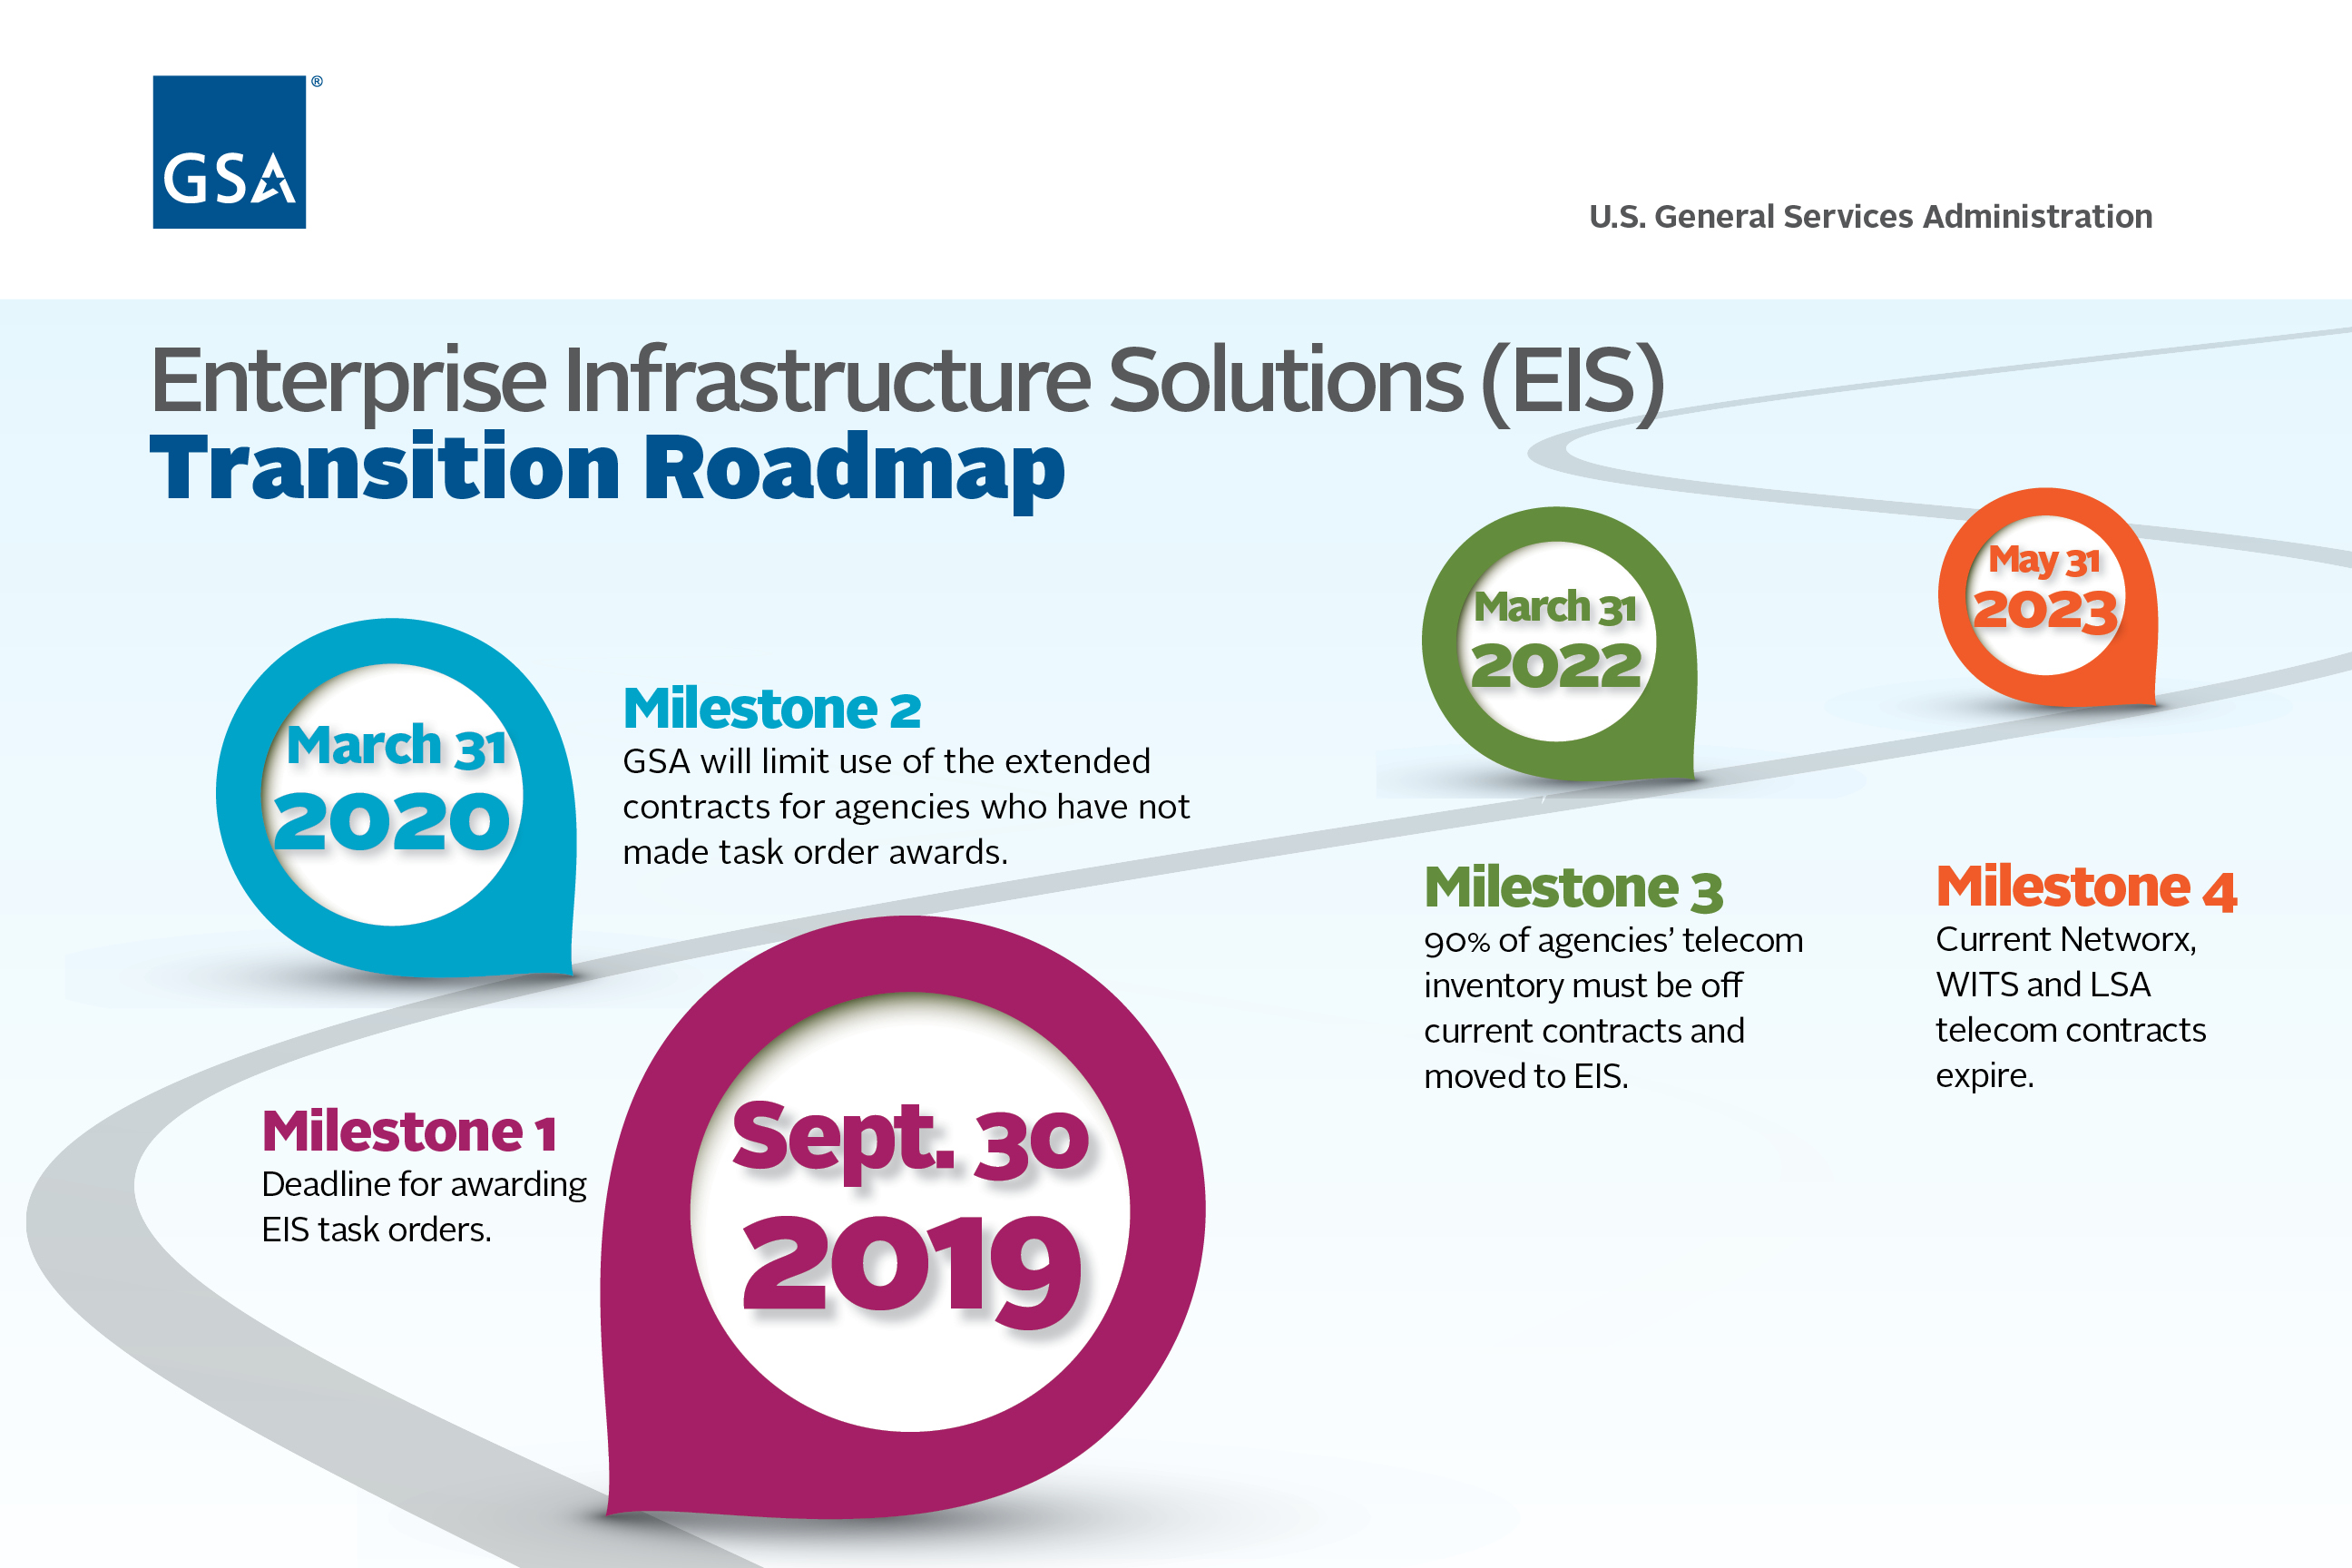 Roadmap of EIS dates